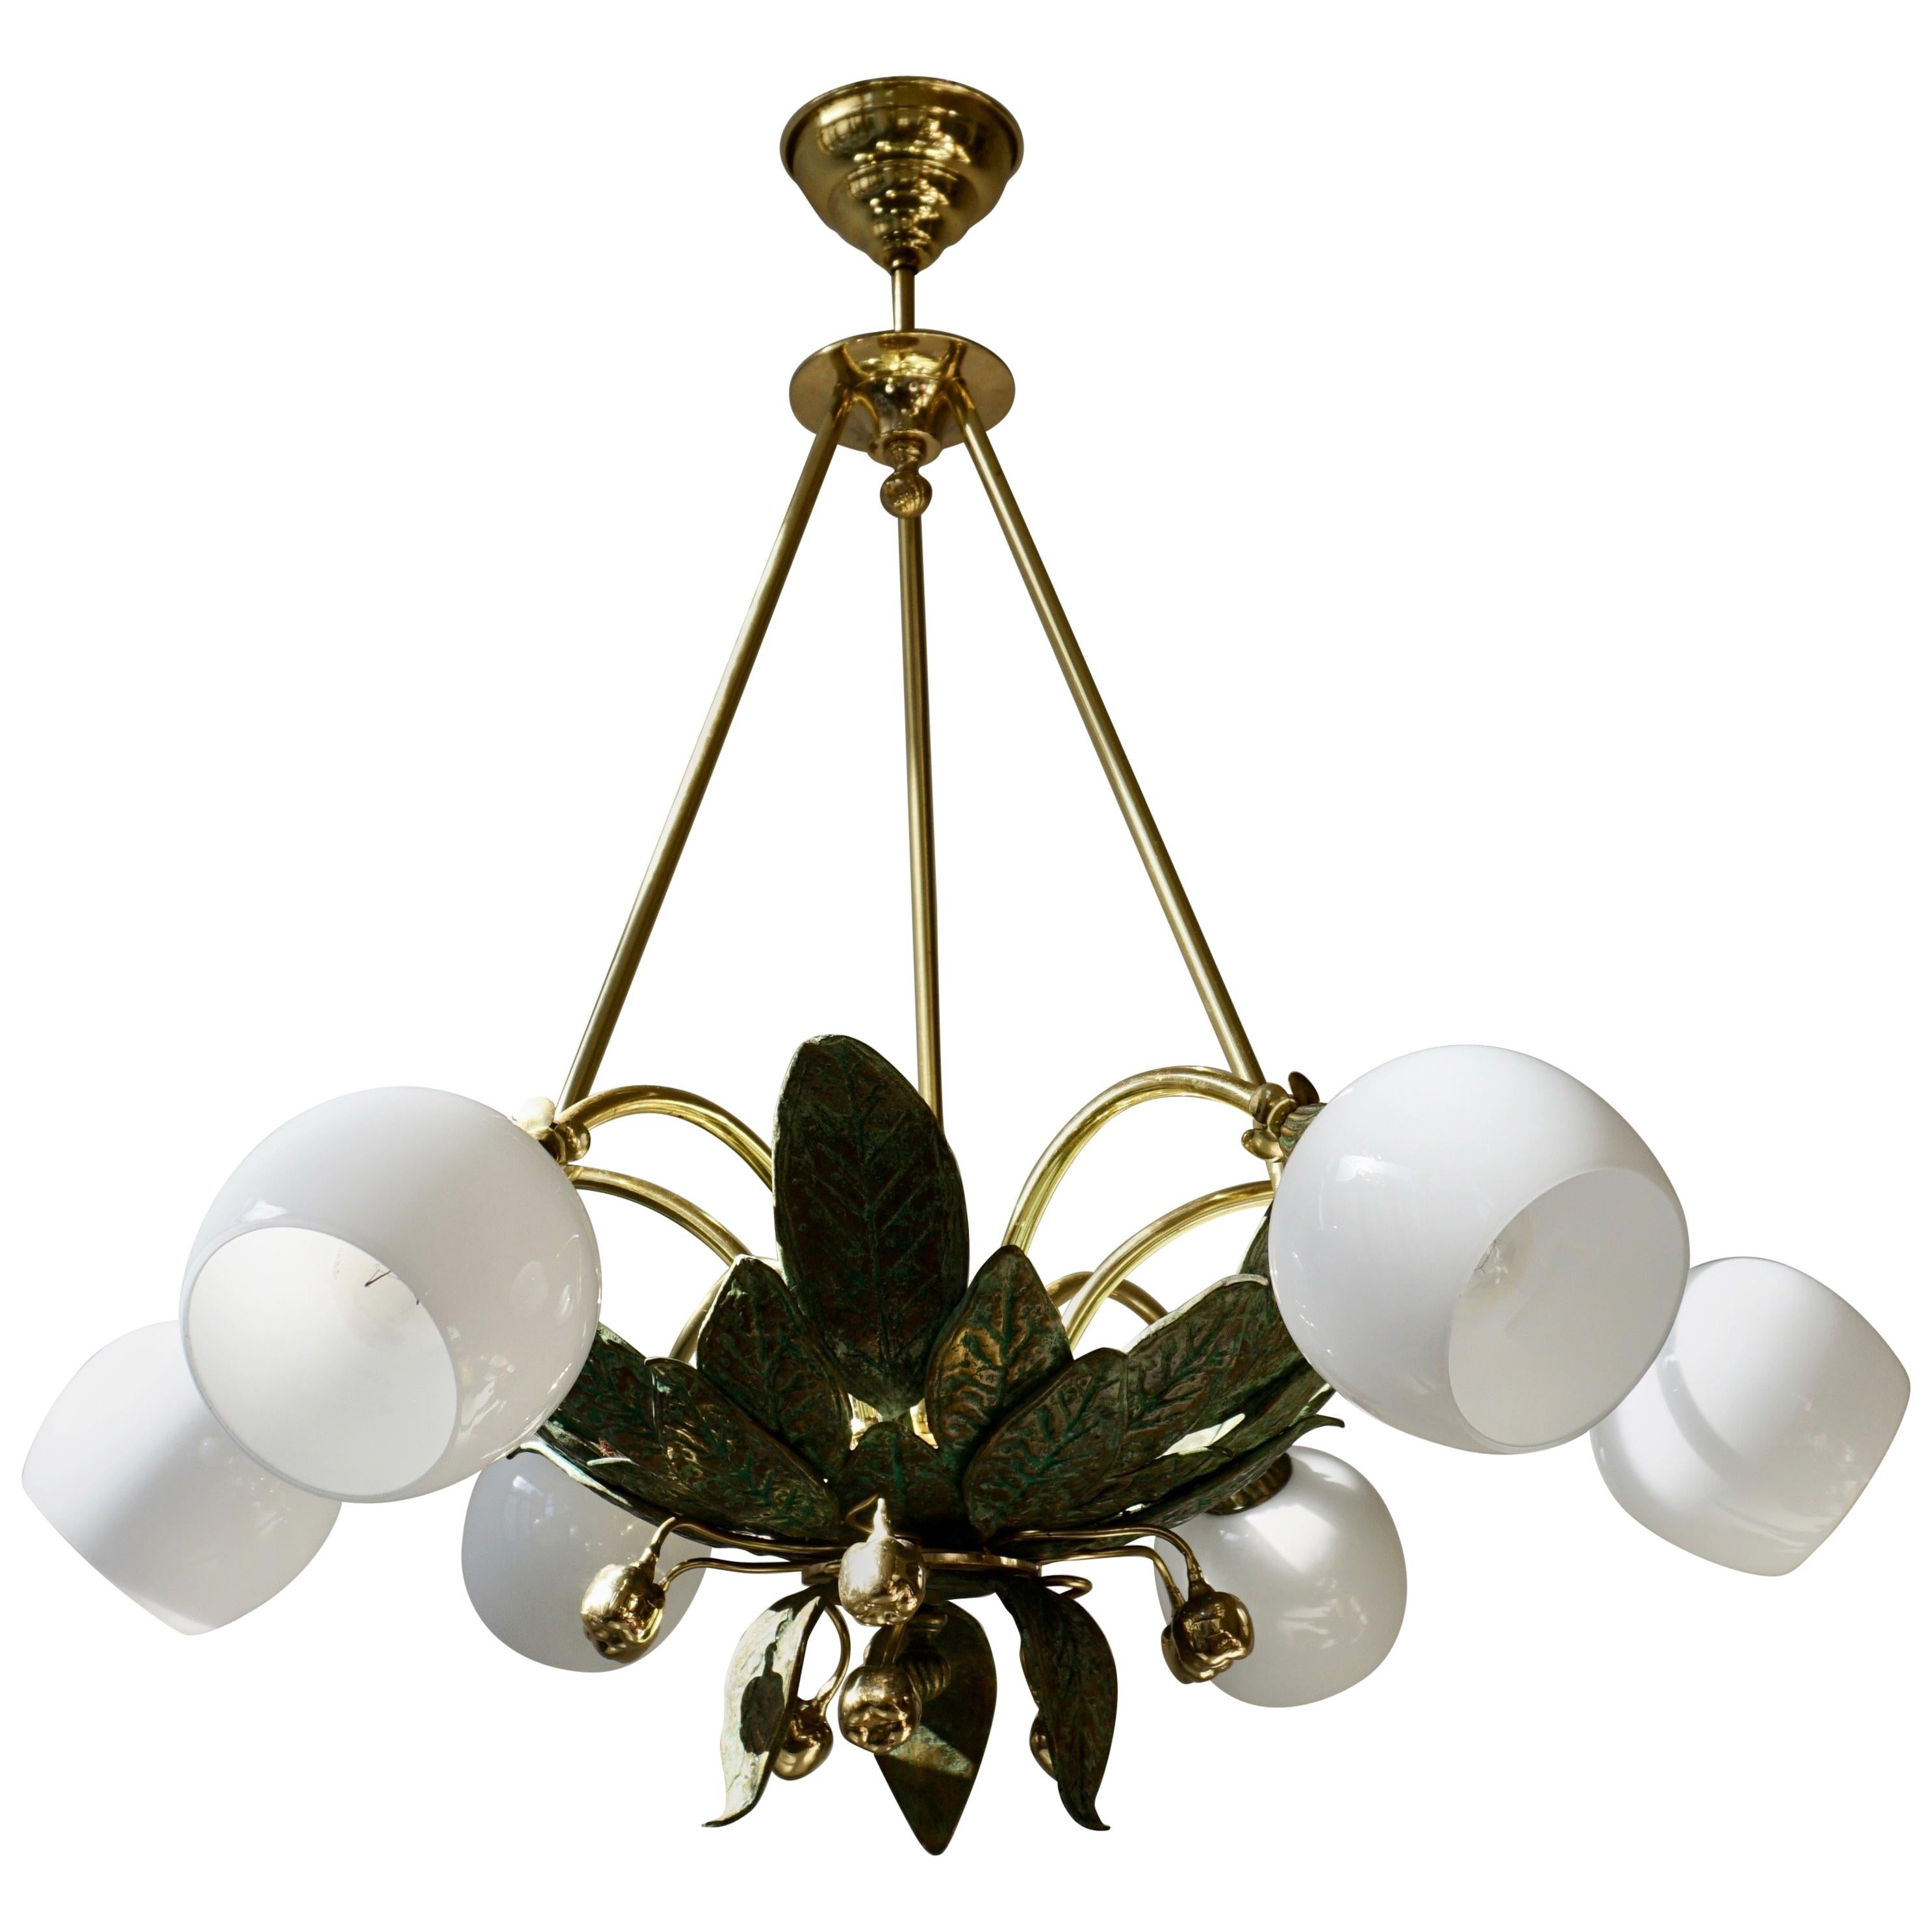 Chandelier in Bronze and Brass with Glass Shades